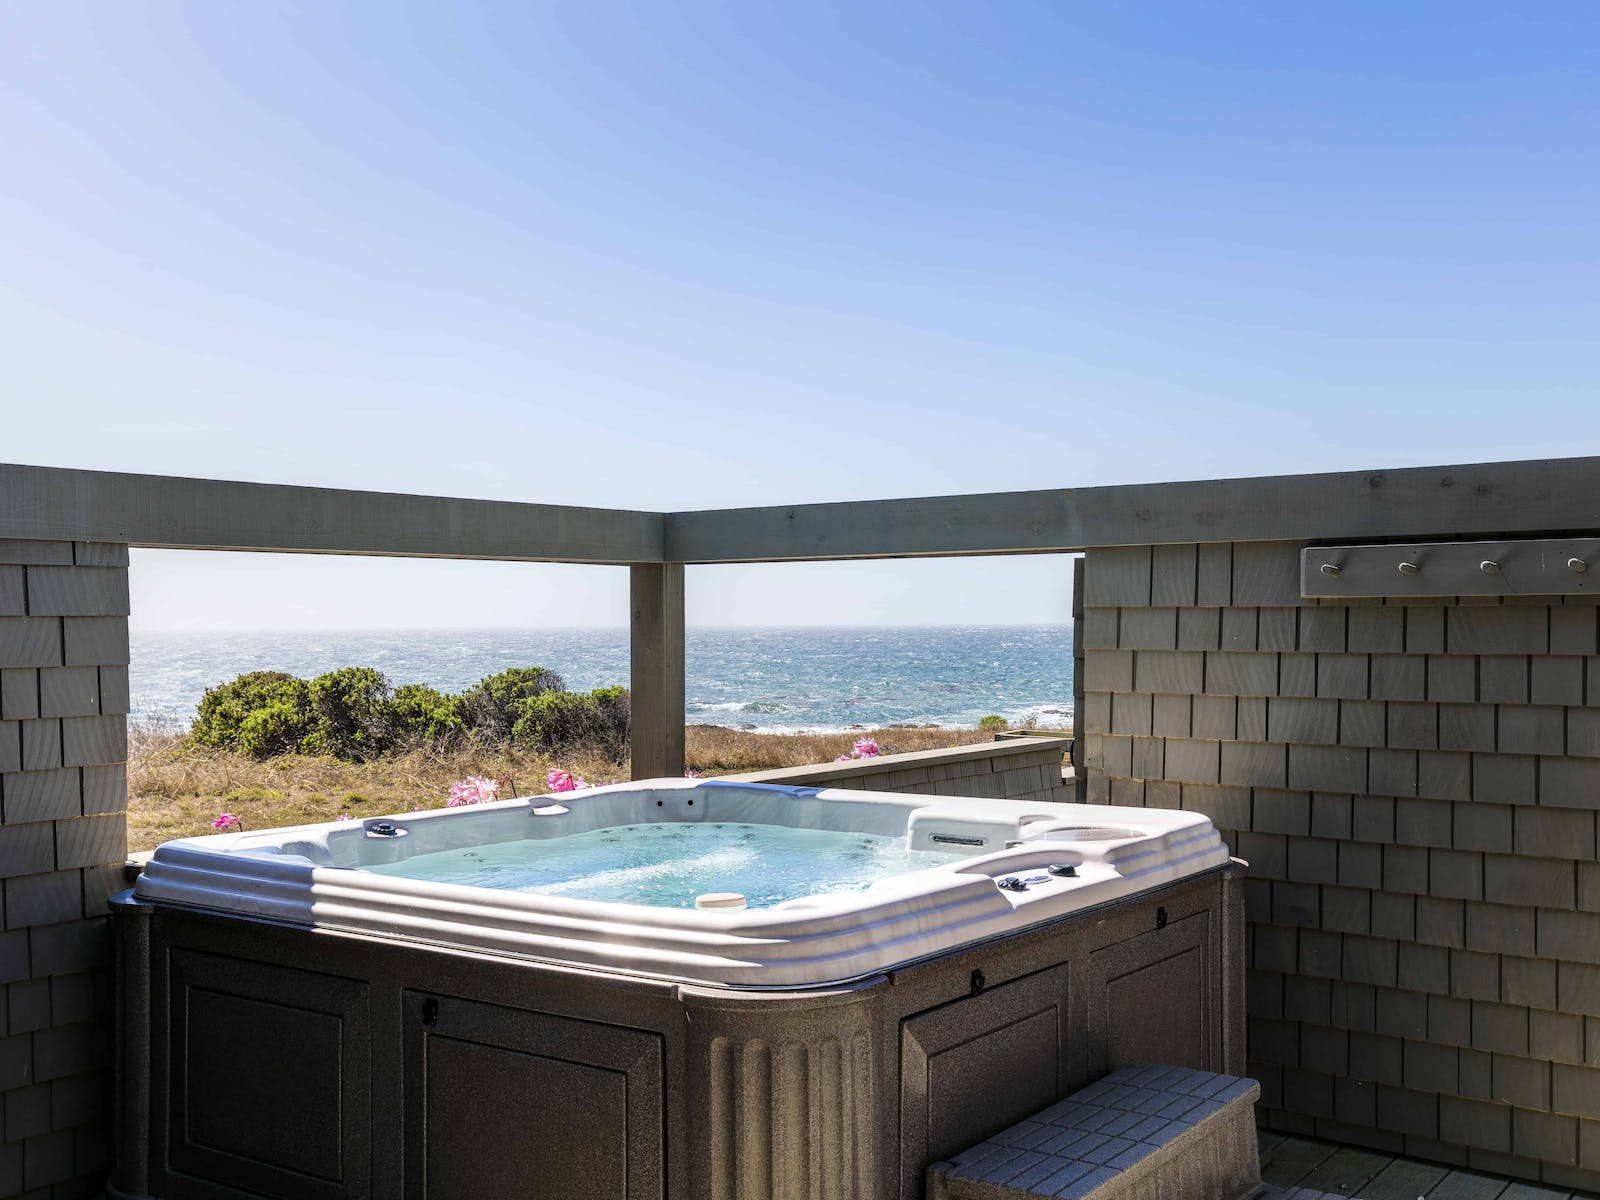 Vacation rental back patio with private hot tub and views of the ocean